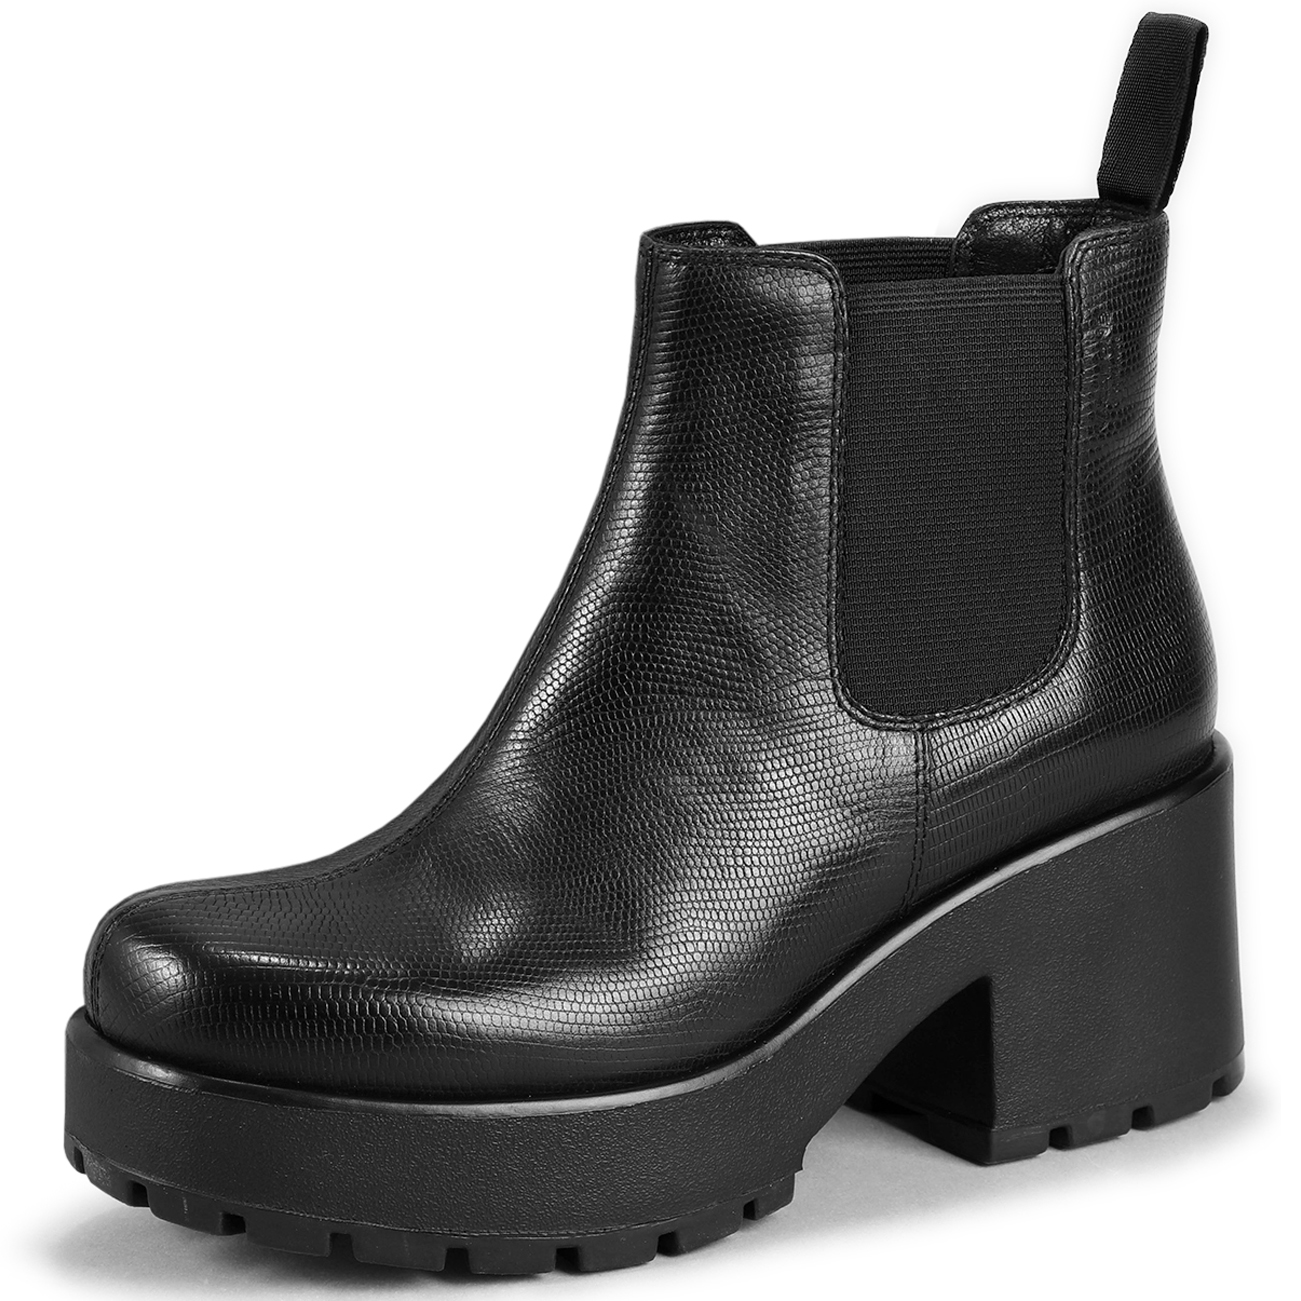 Vagabond Dioon Chelsea Boot